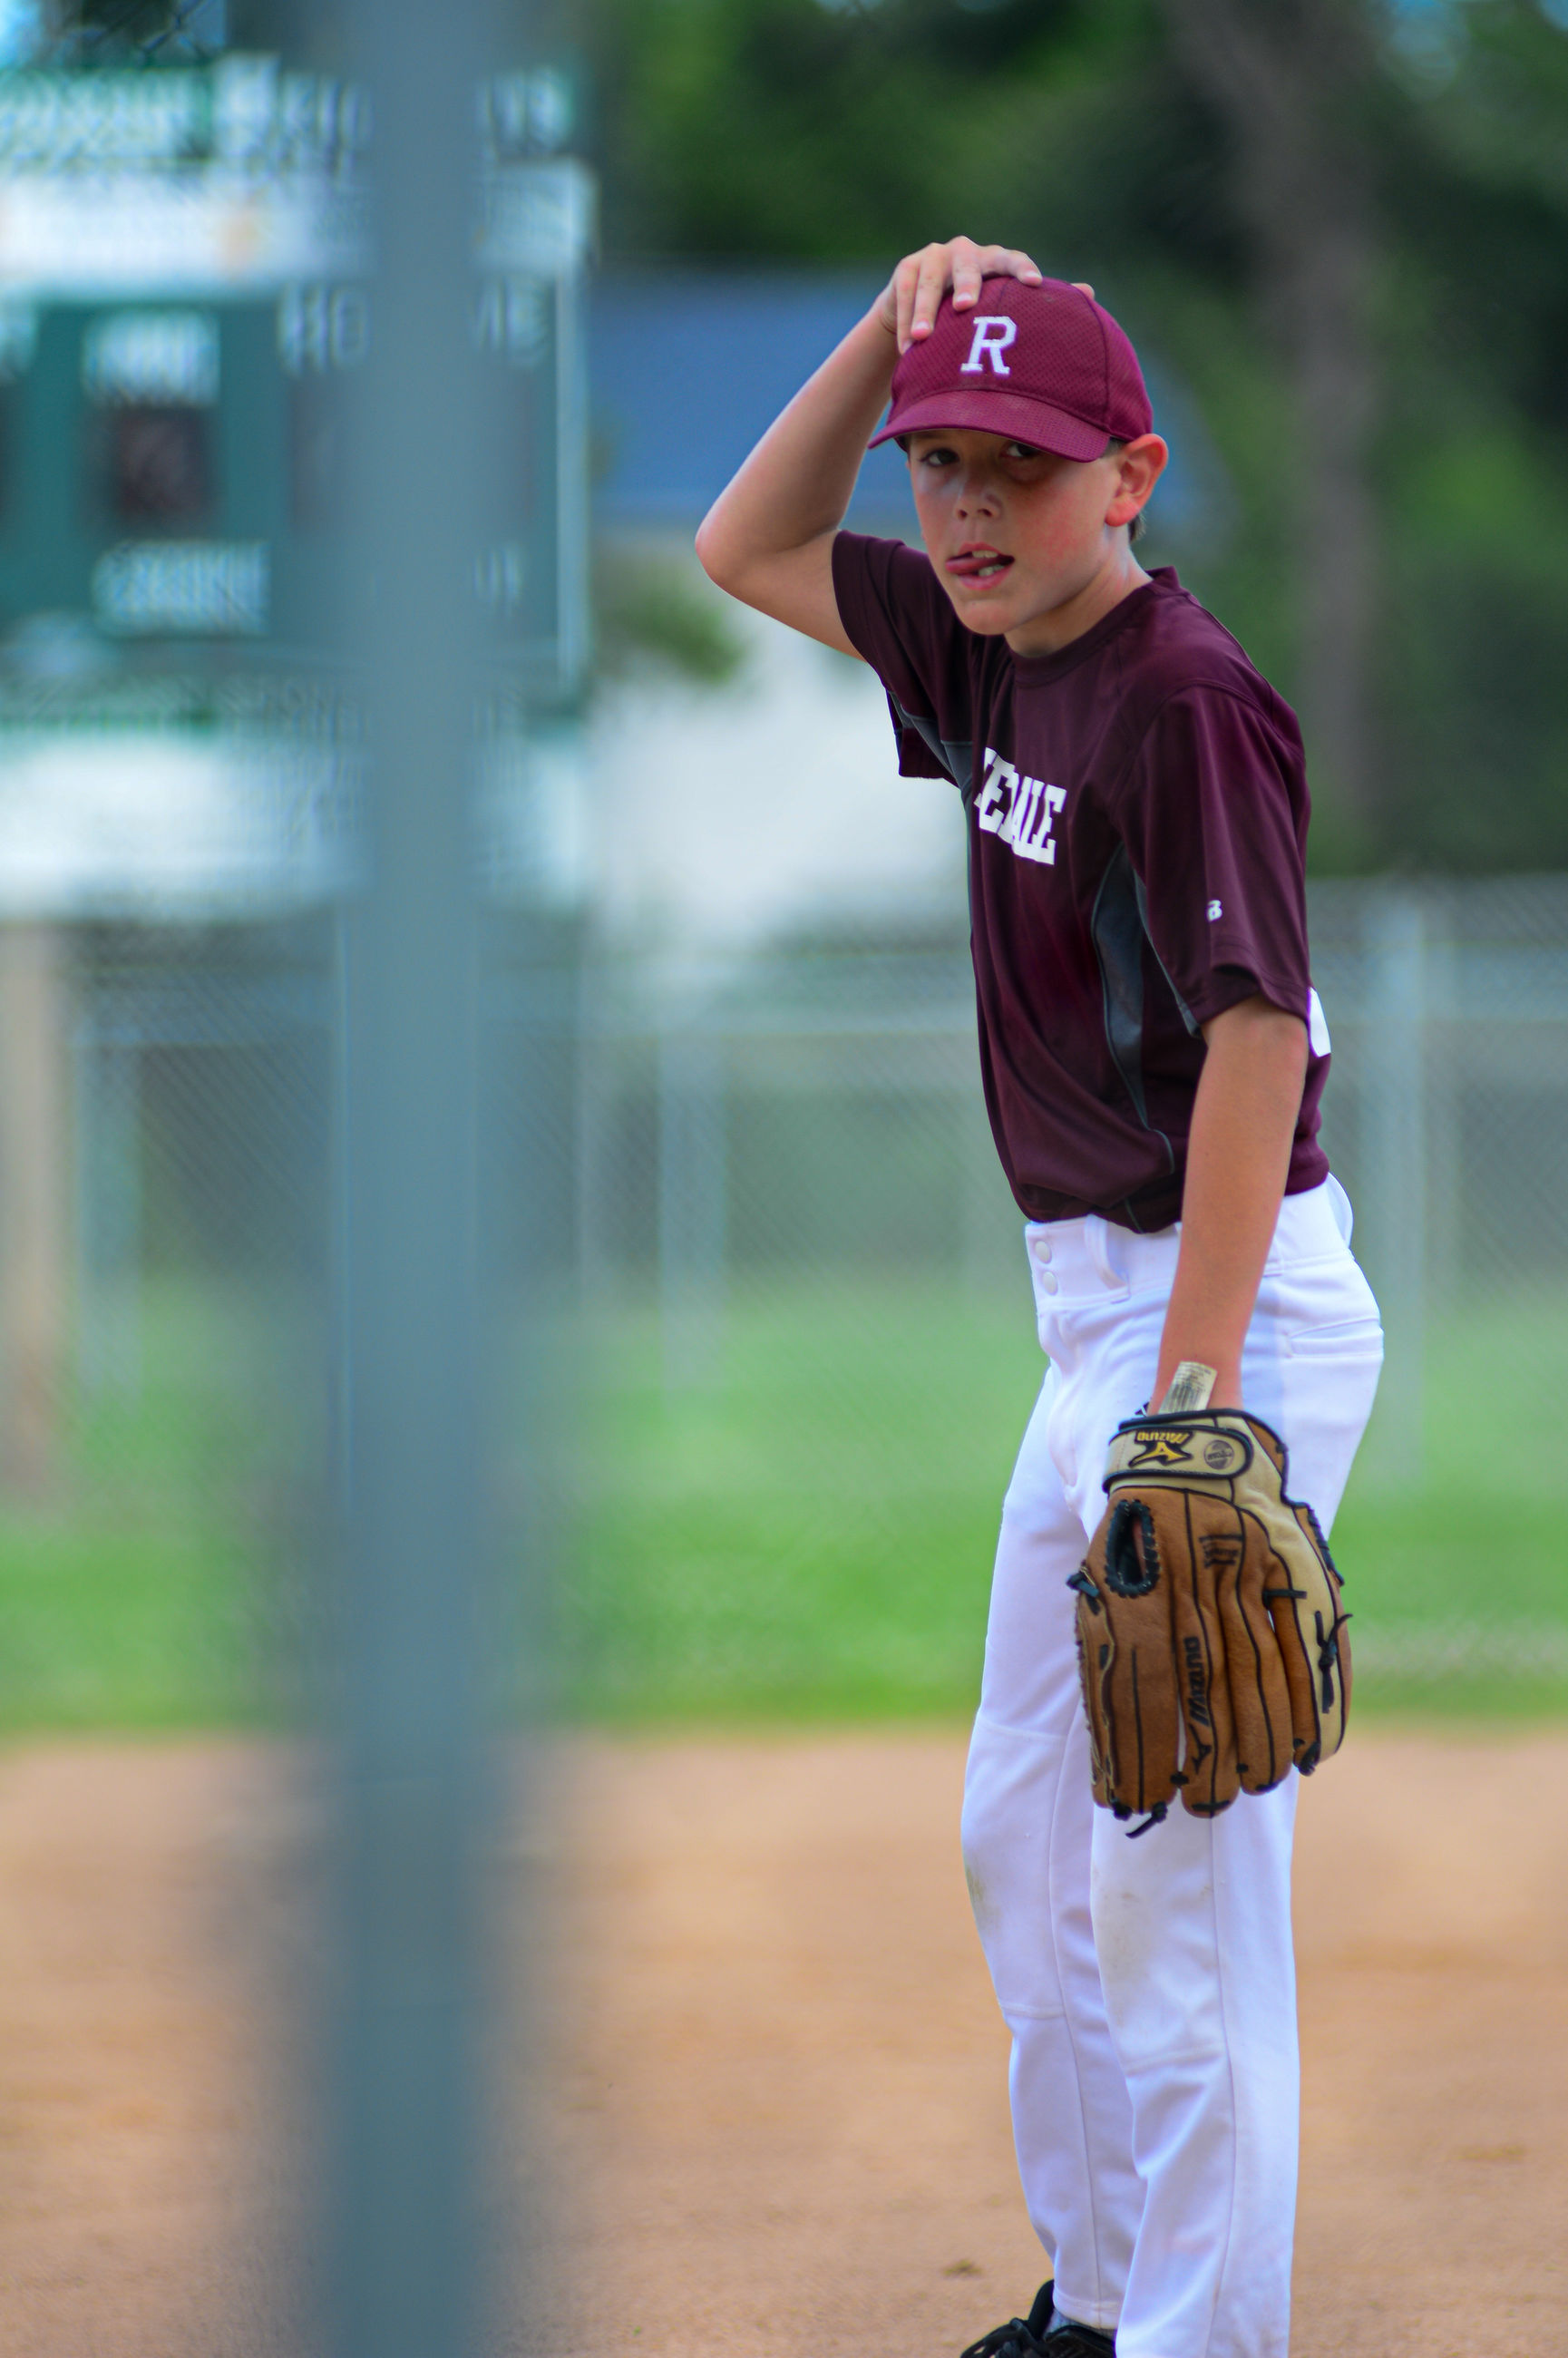 childhood, child, one person, boys, males, real people, men, lifestyles, sport, leisure activity, baseball - sport, full length, day, standing, three quarter length, cap, front view, casual clothing, innocence